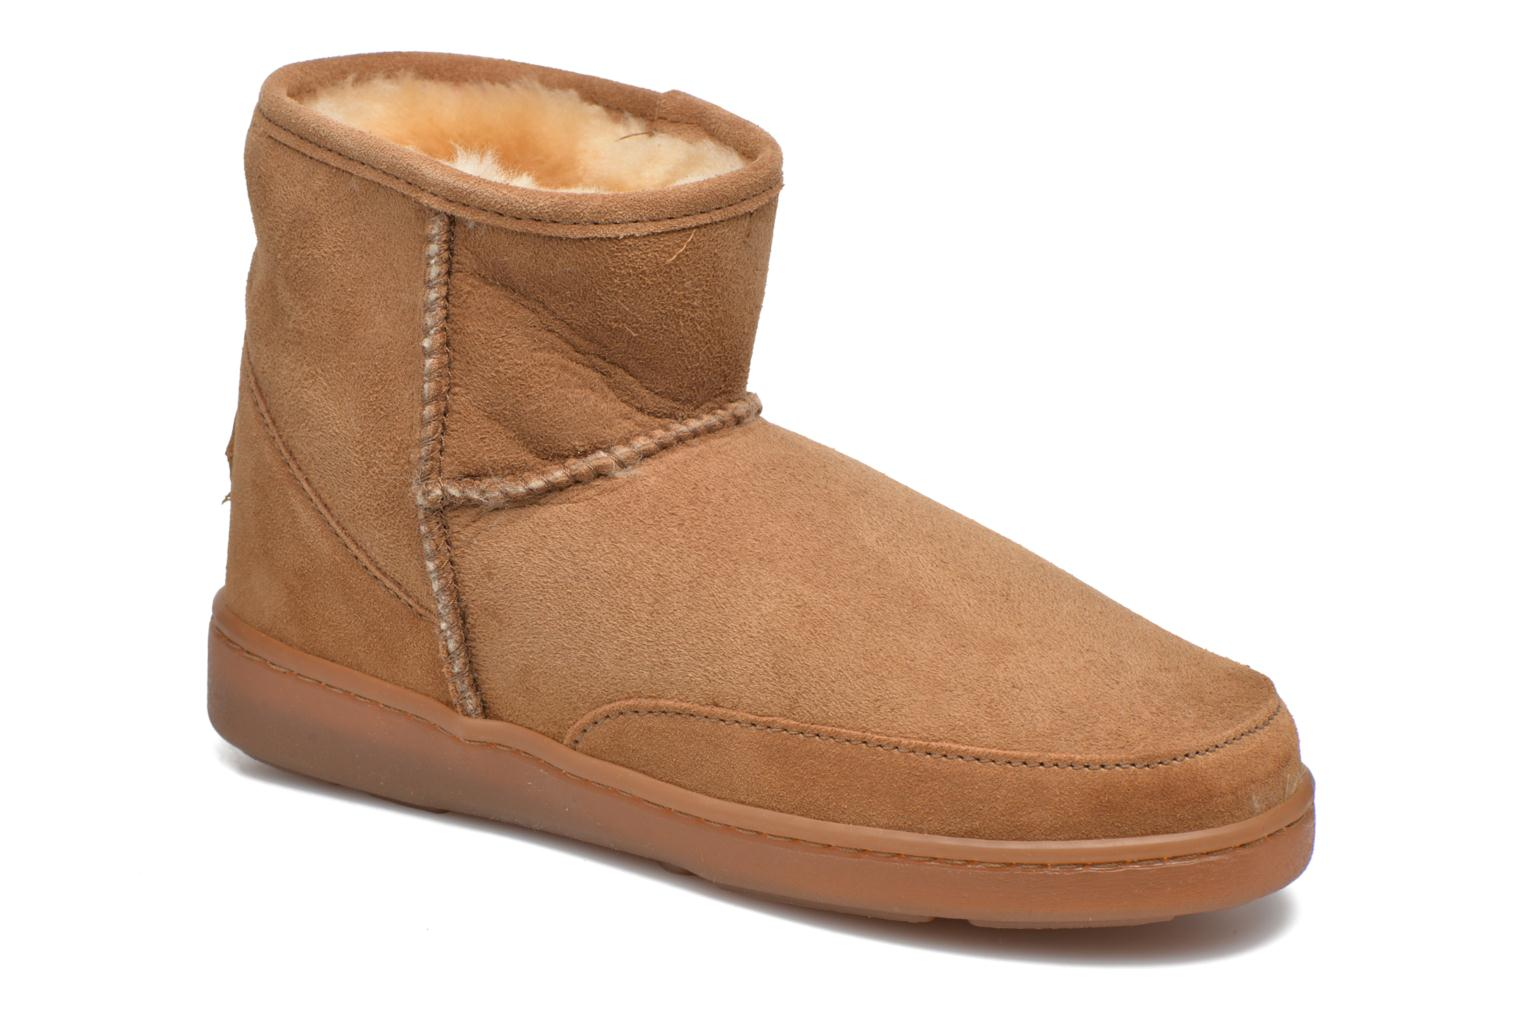 Sheepskin Tan Boot Ankle Hi Sheepskin Gold Minnetonka Pug xHqw080Y